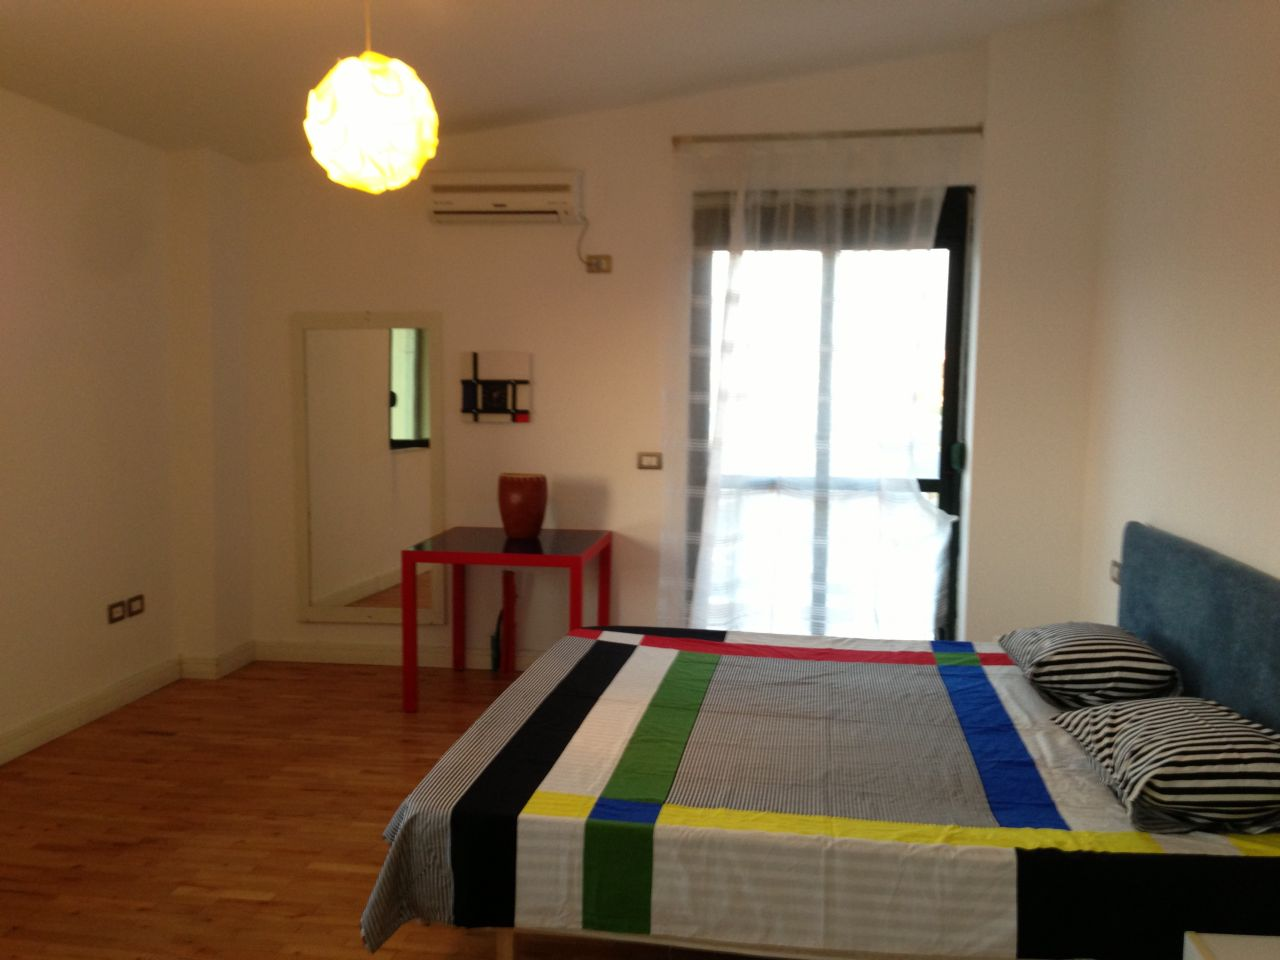 Apartment for rent in Tirana Albania, near the lake and Blloku area.